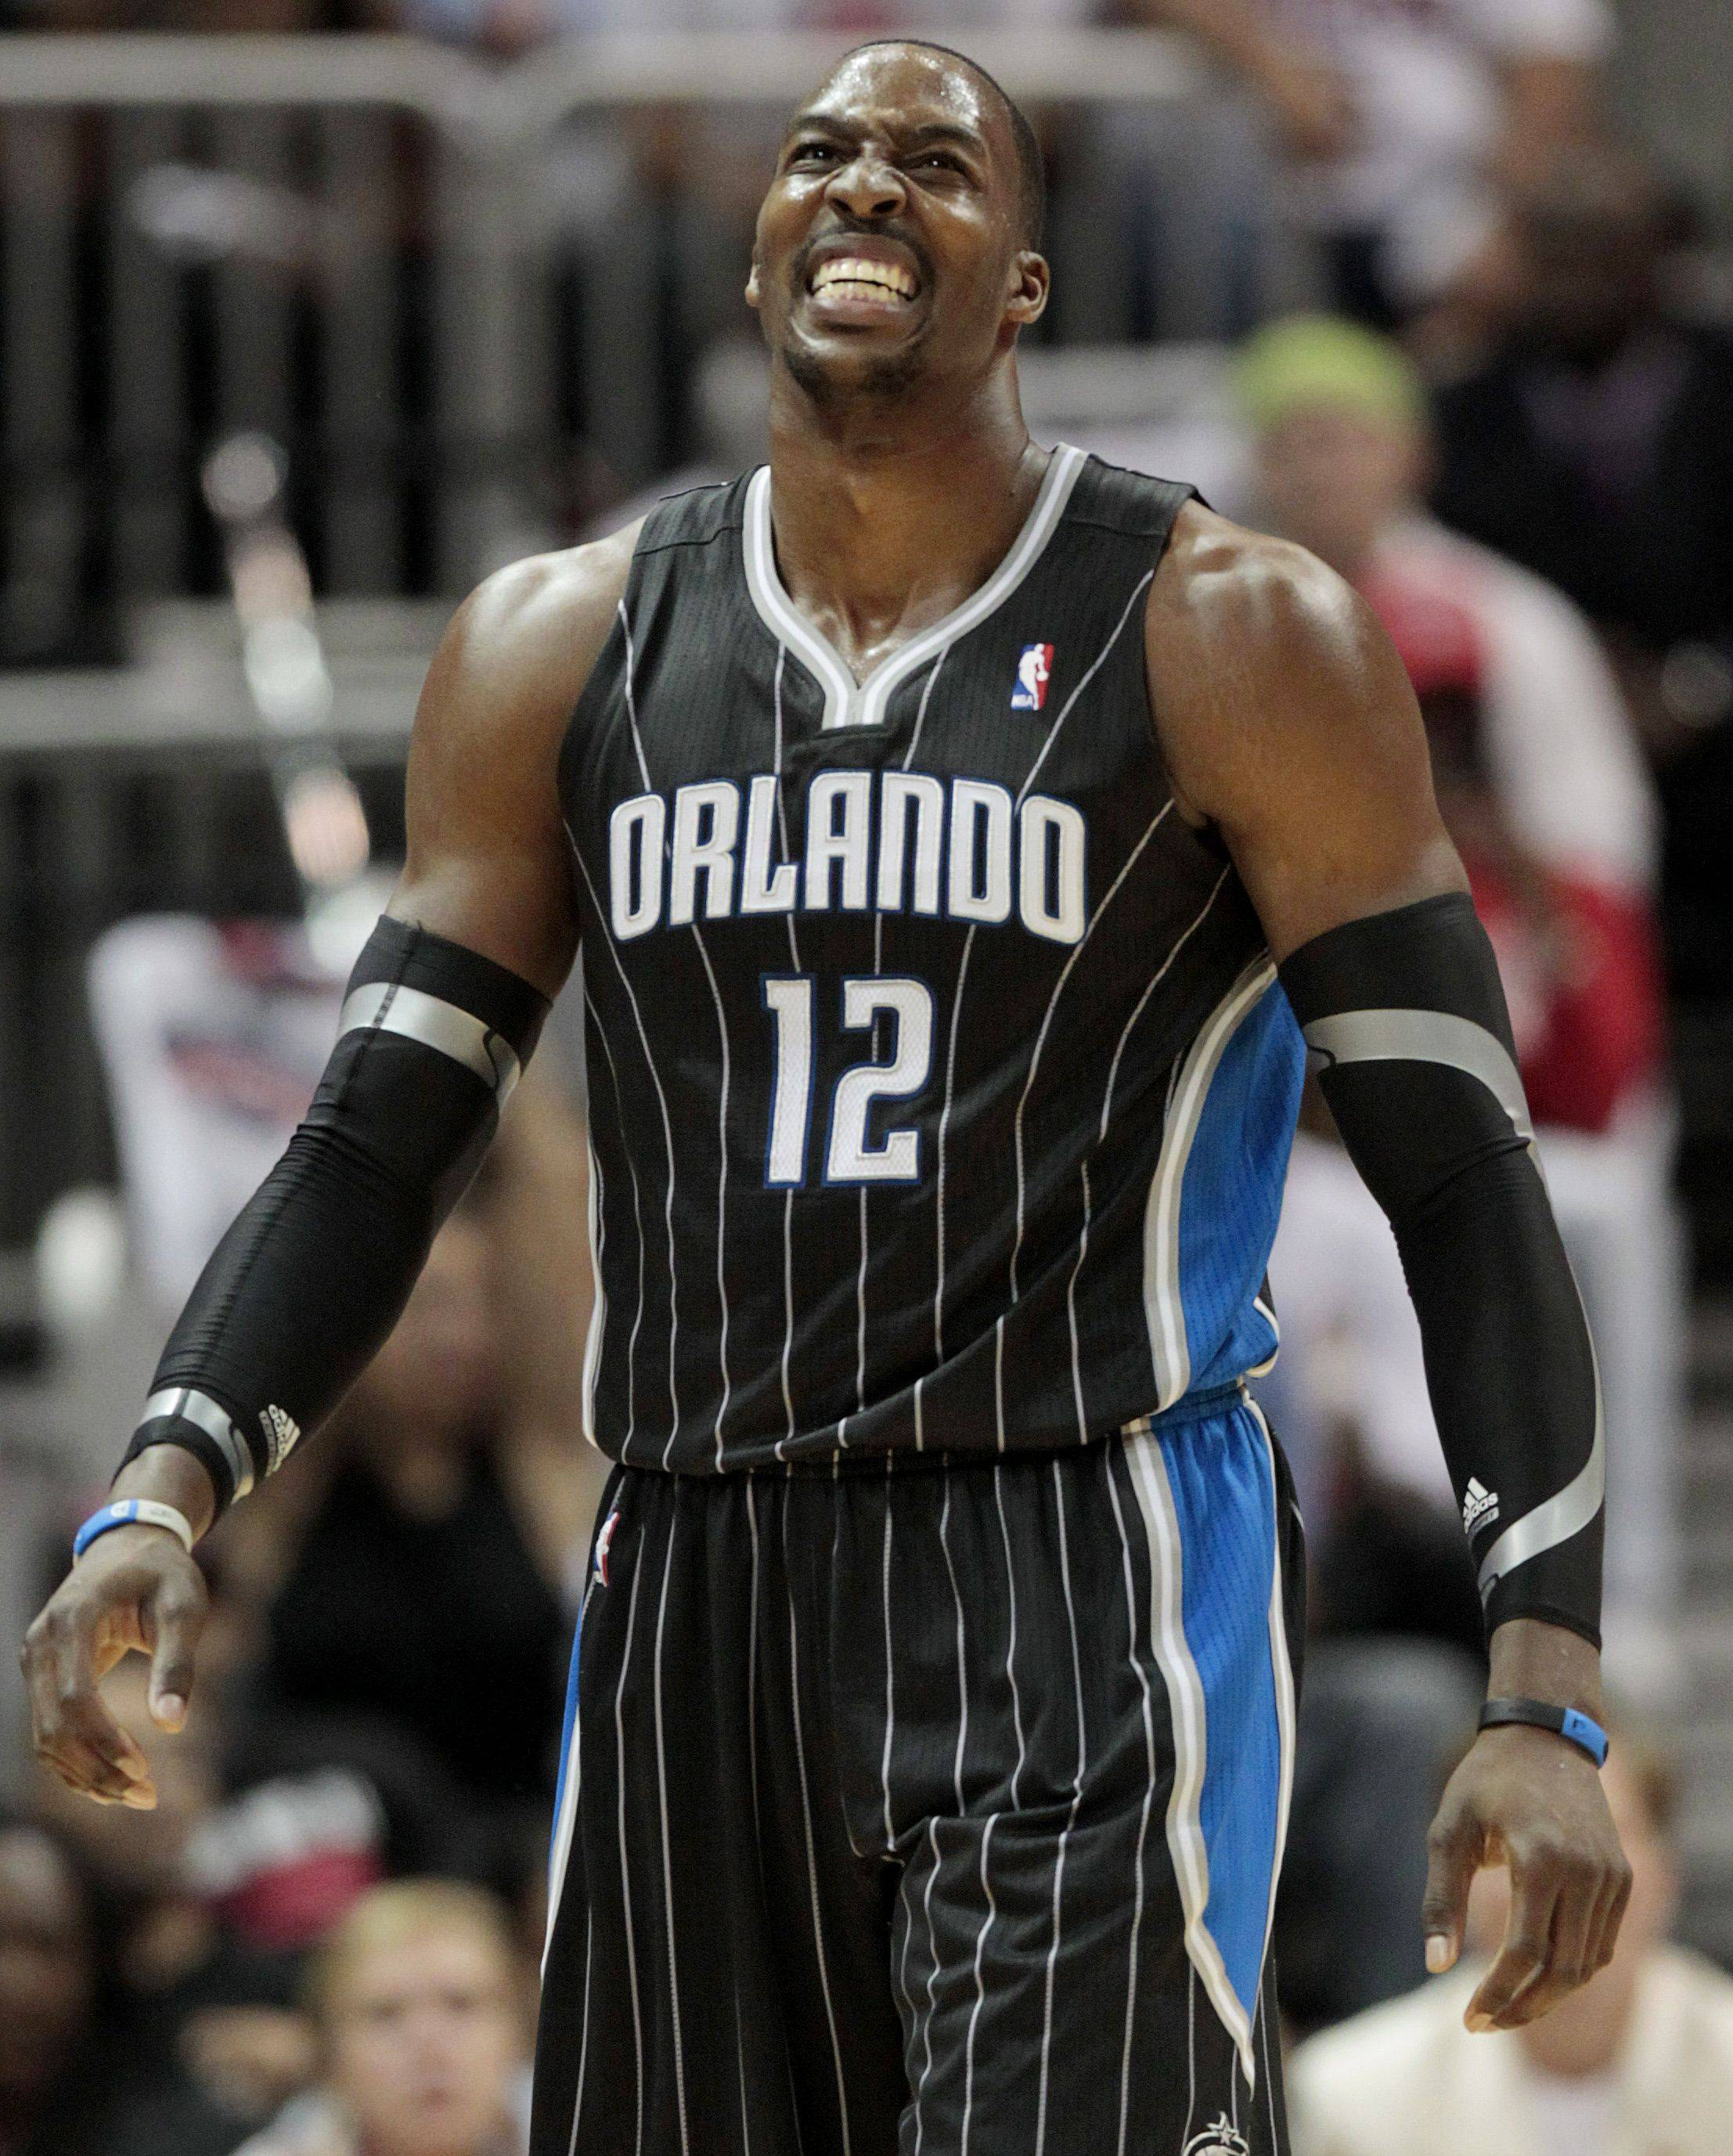 Could the Bulls work a trade with Orlando for Dwight Howard? Possibly, but only if the asking price isn't too high.